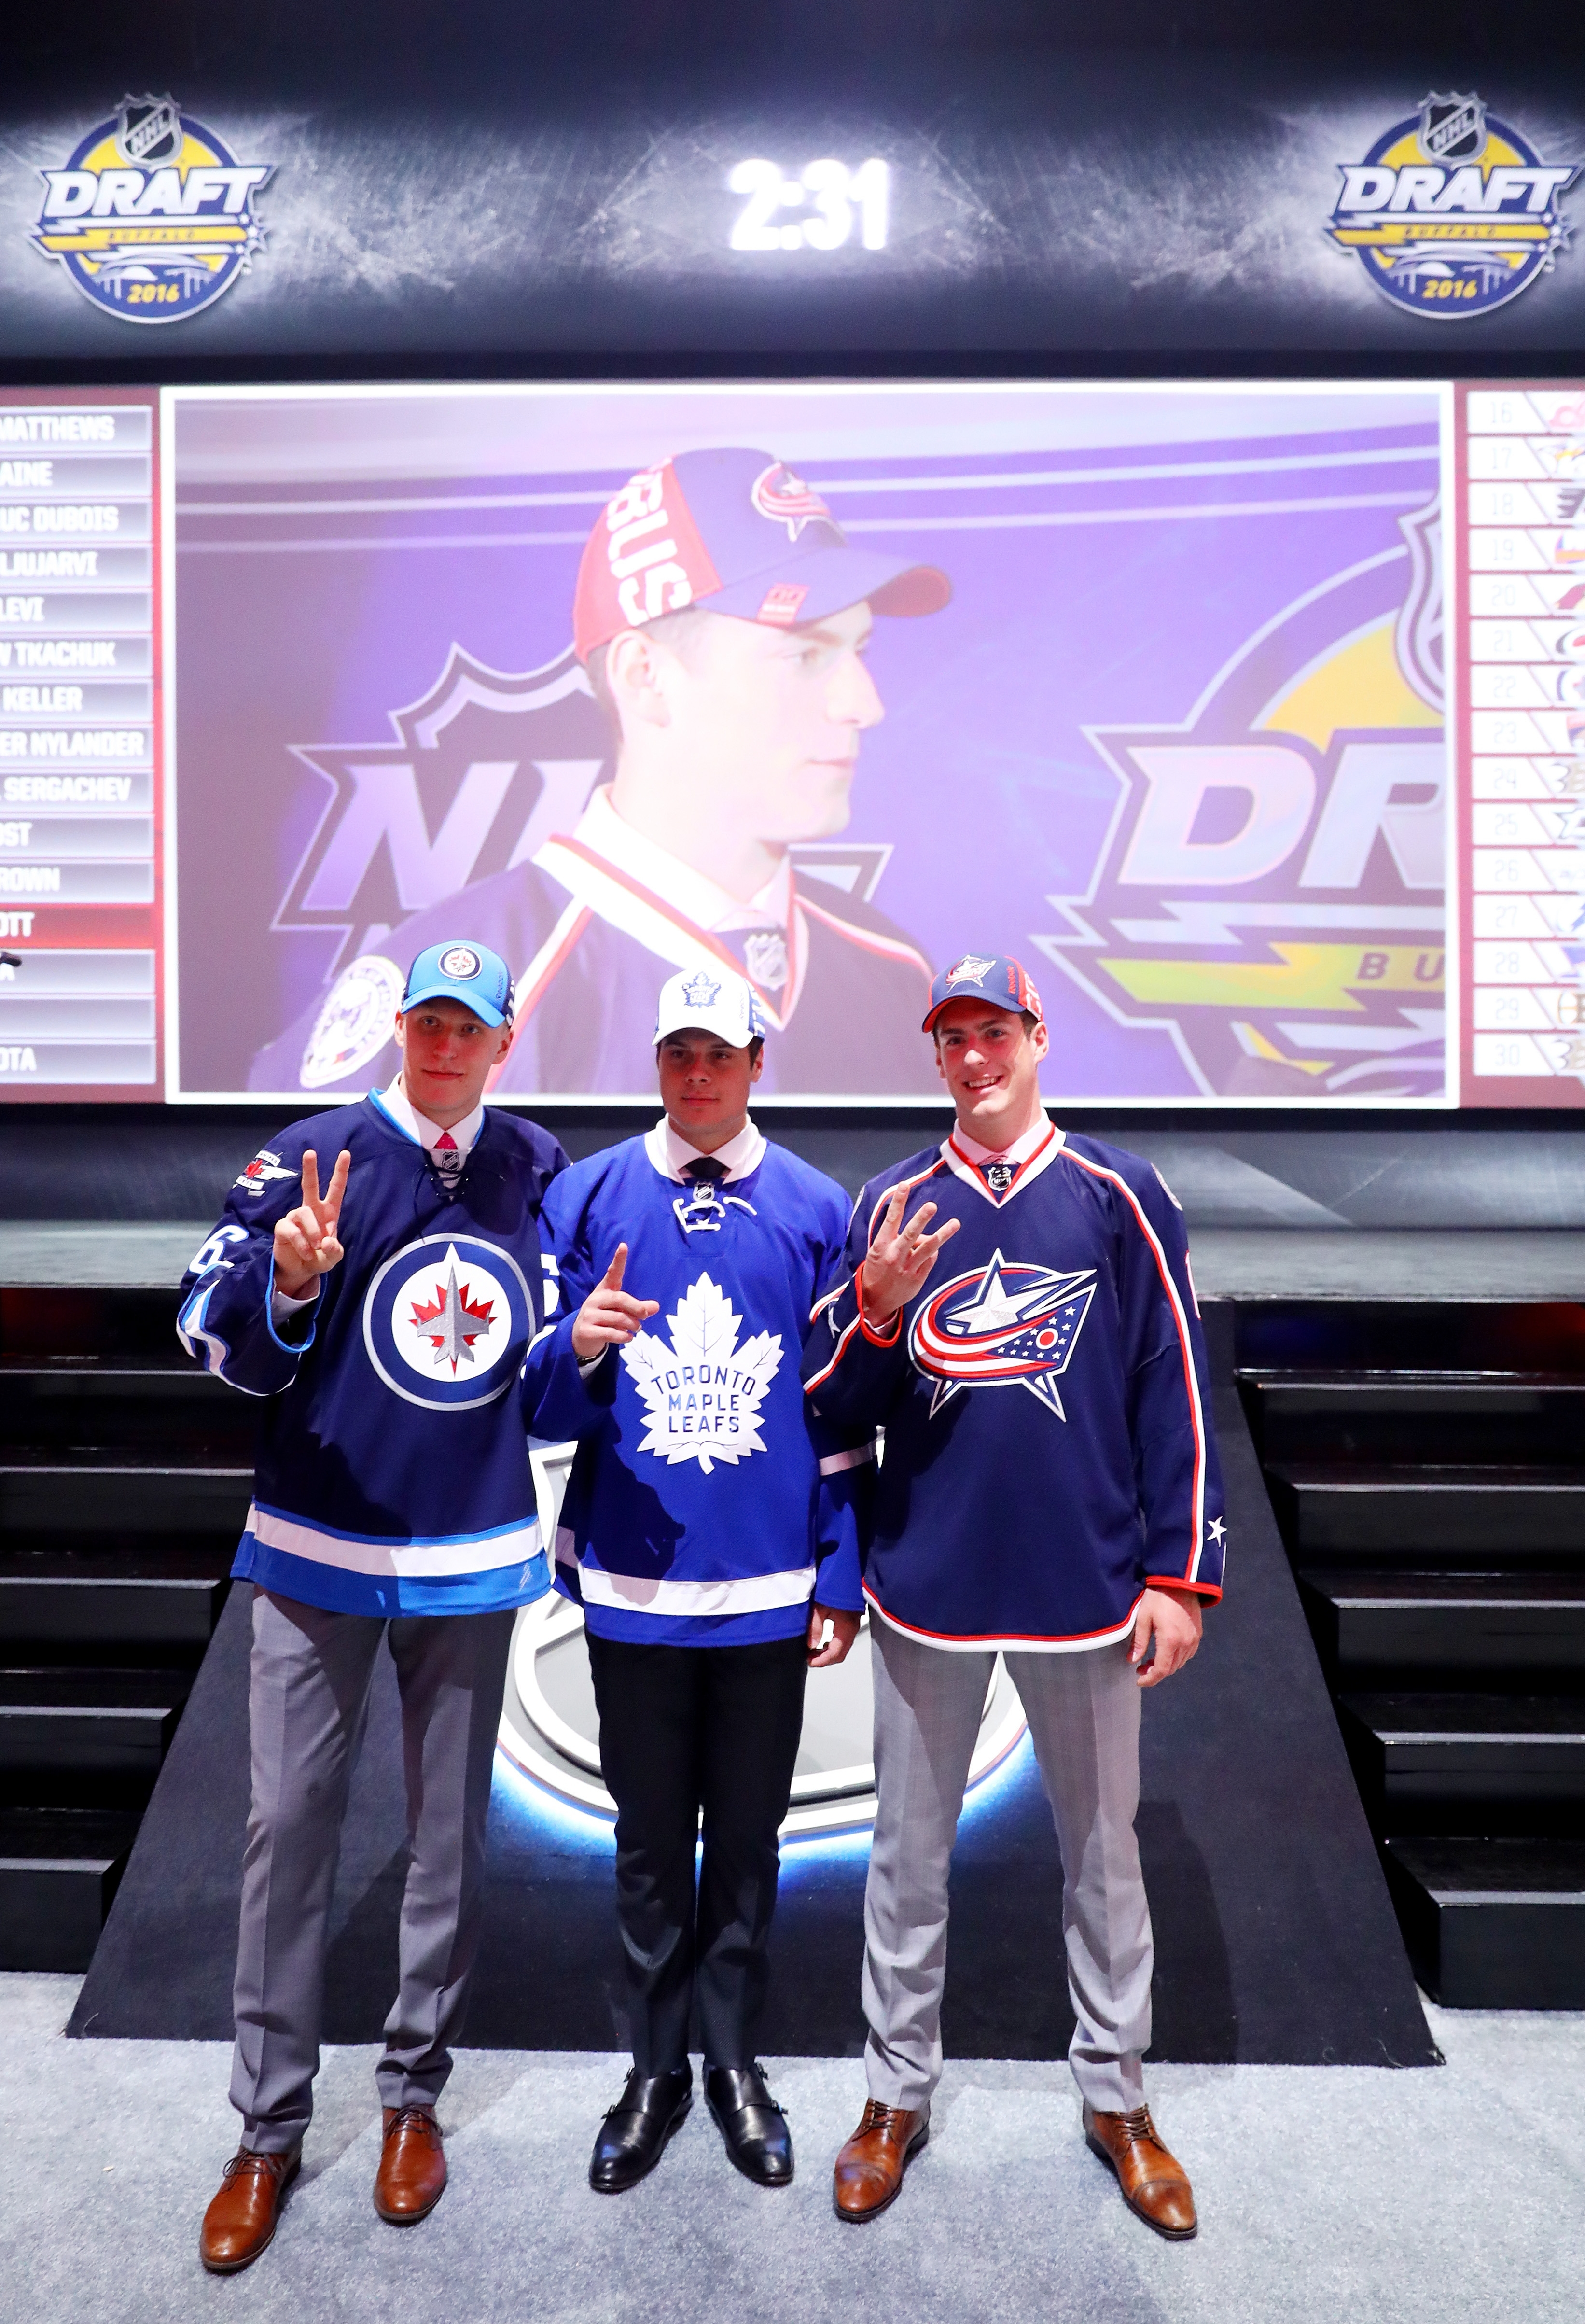 Winnipeg's Patrik Laine, Toronto's Auston Matthews and Columbus' Pierre-Luc Dubois pose together after being the first three selections in the first round of the NHL Draft on Friday at First Niagara Center.